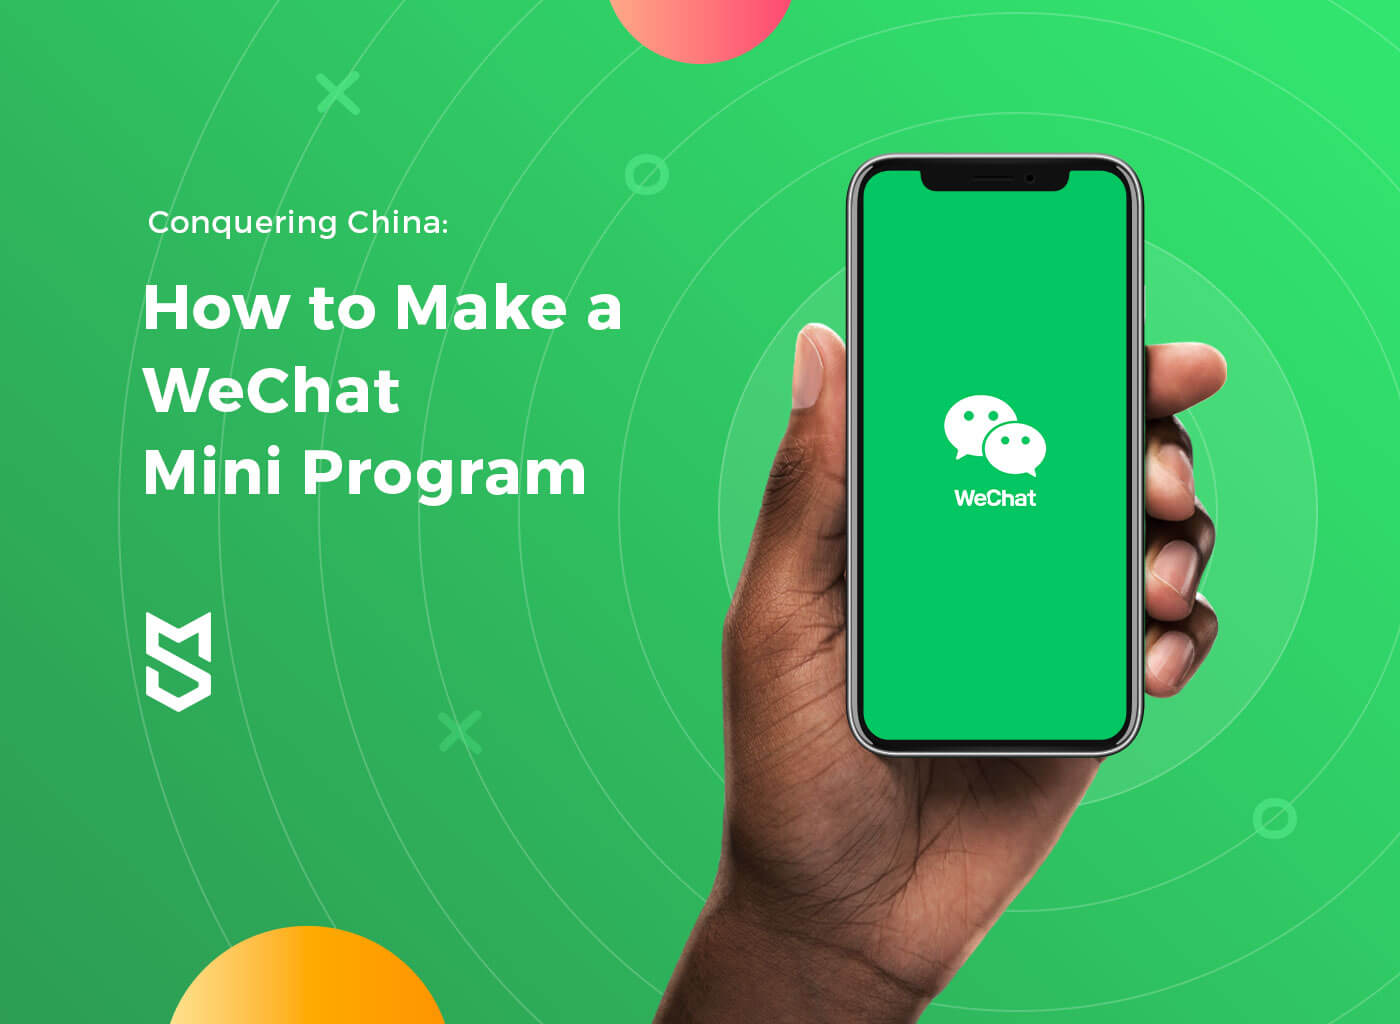 Conquering China: How to Make a WeChat Mini Program